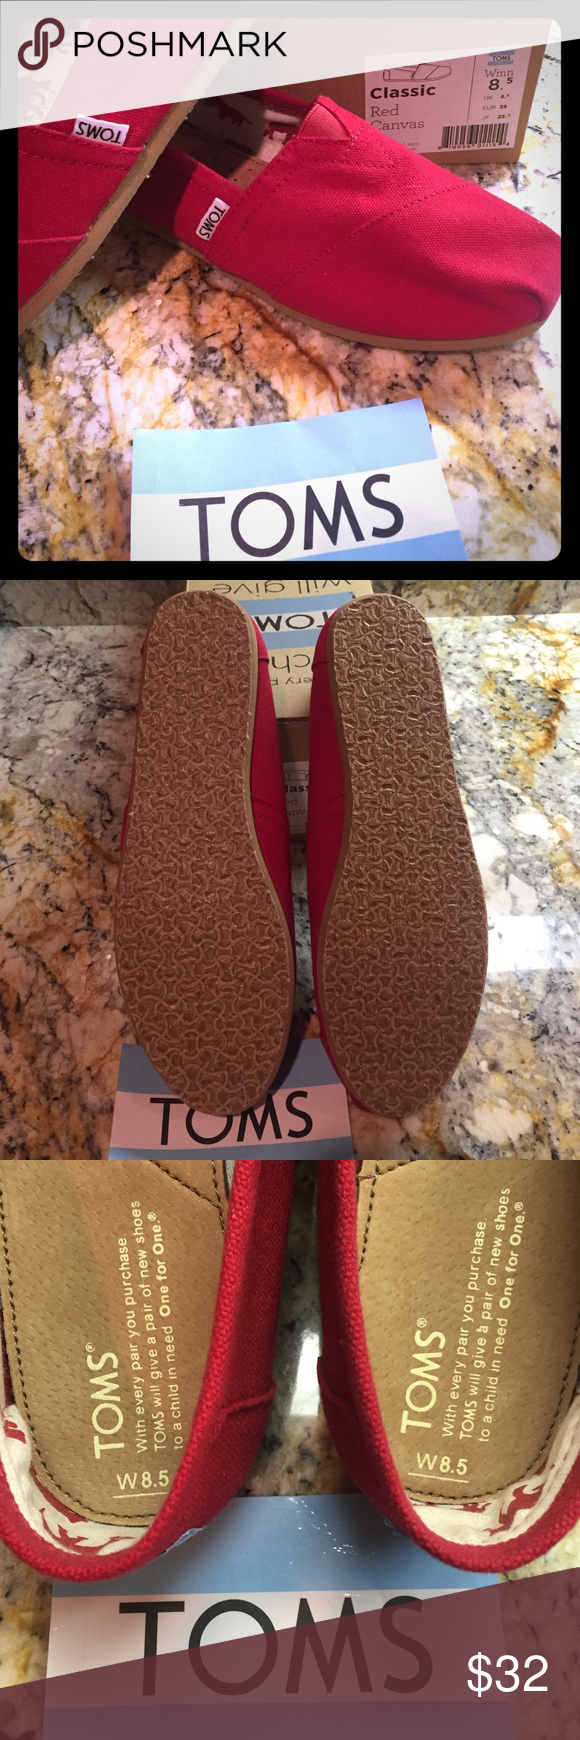 NWT Red Canvas Toms 😊 NWT-Never Worn-Box and sticker included Red Canvas Toms. Open to offers😊 TOMS Shoes